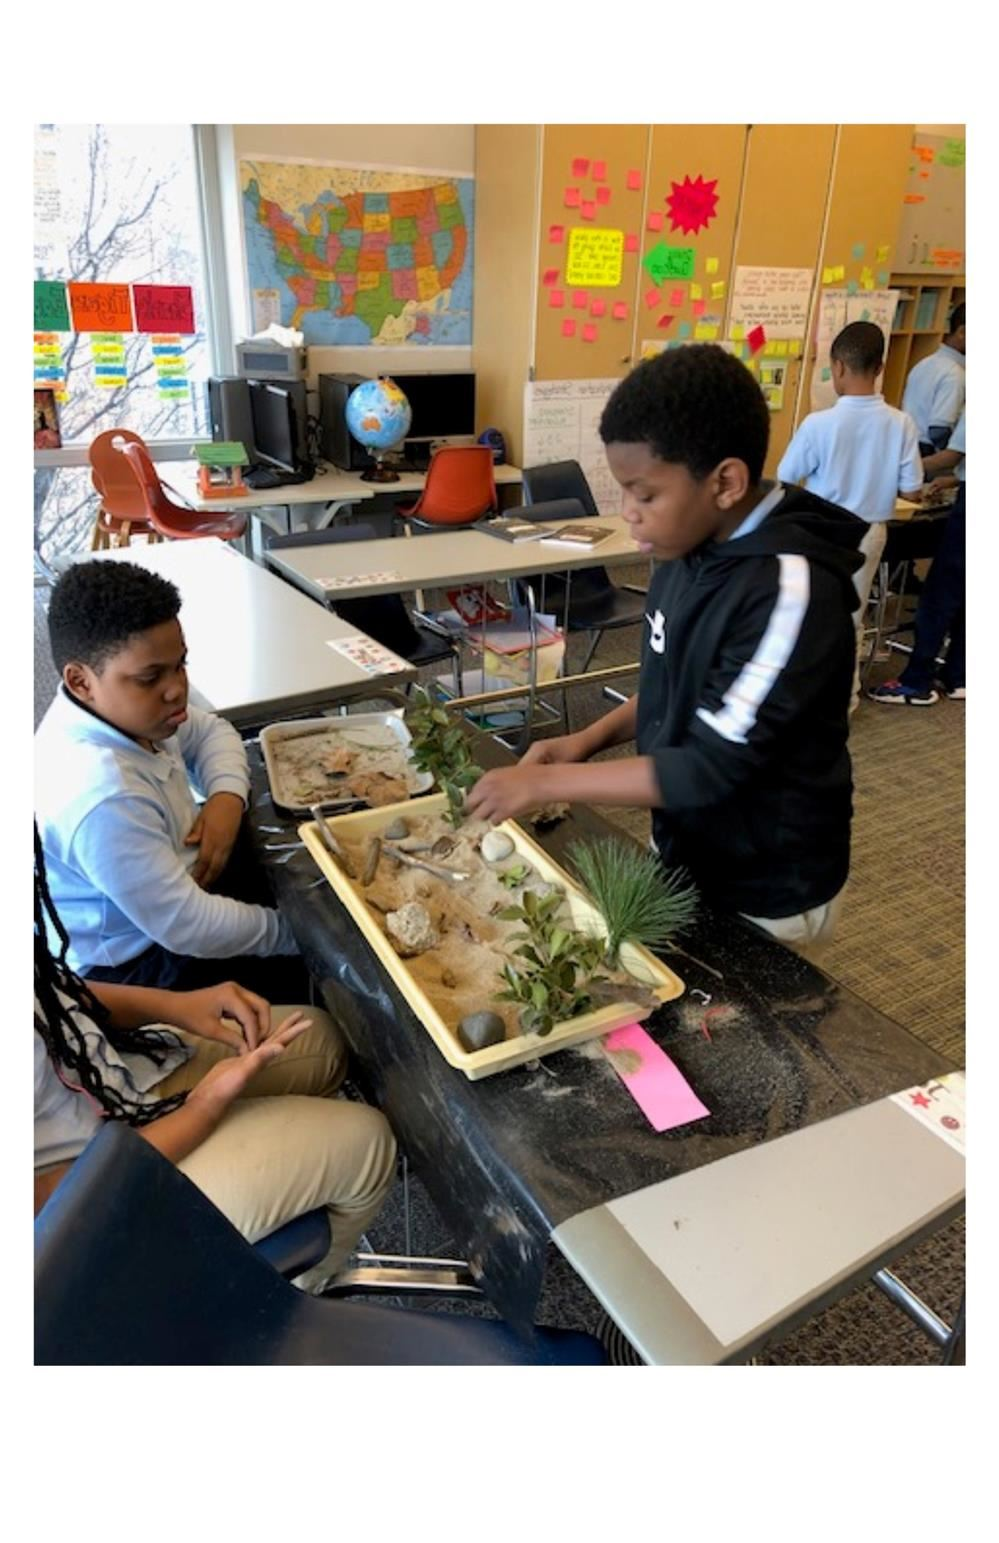 Nature in the classroom